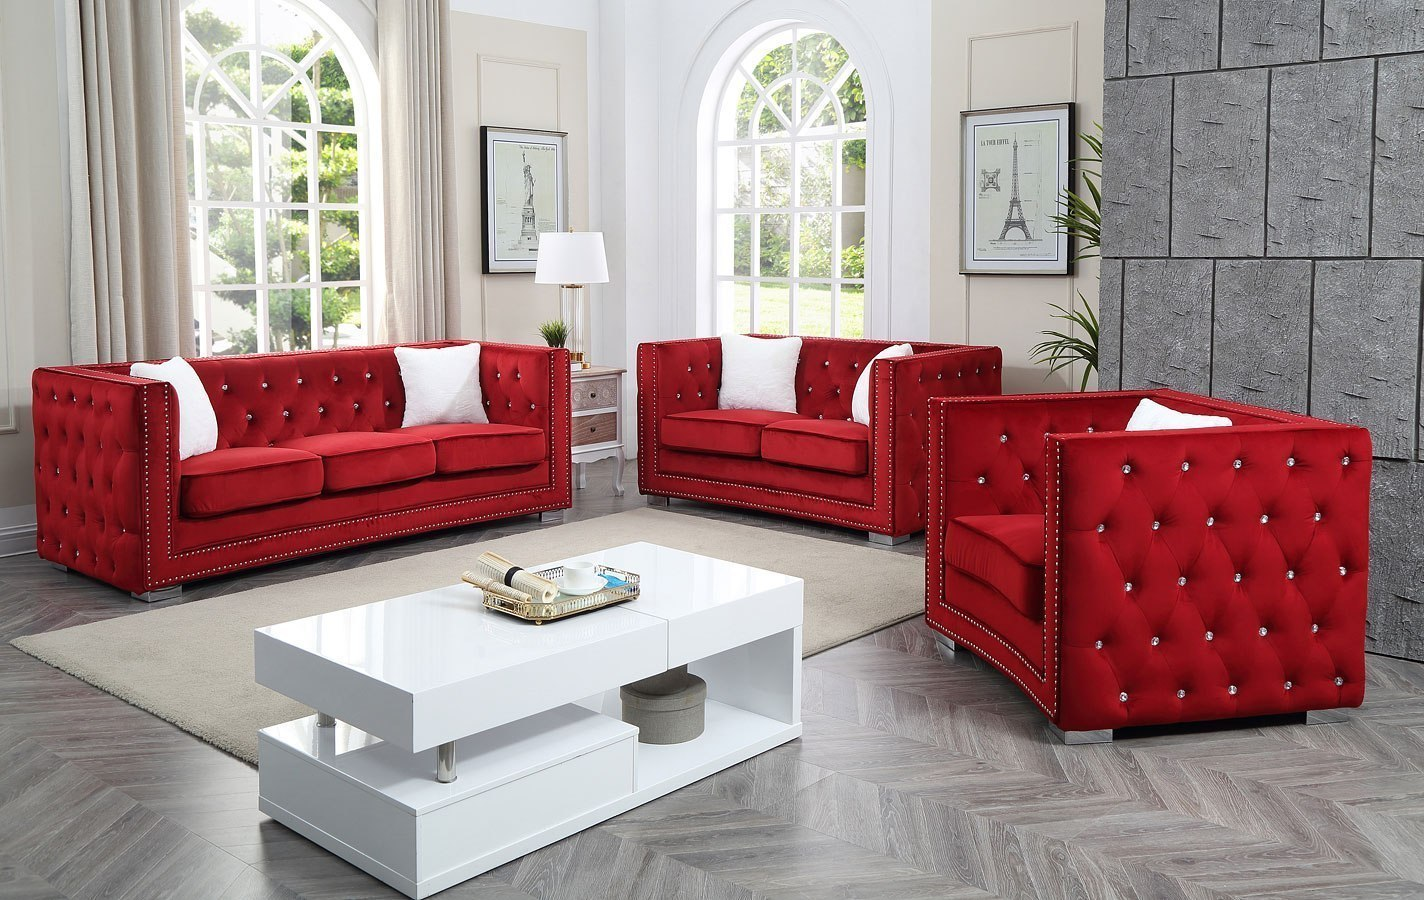 Miami Living Room Set (Red)